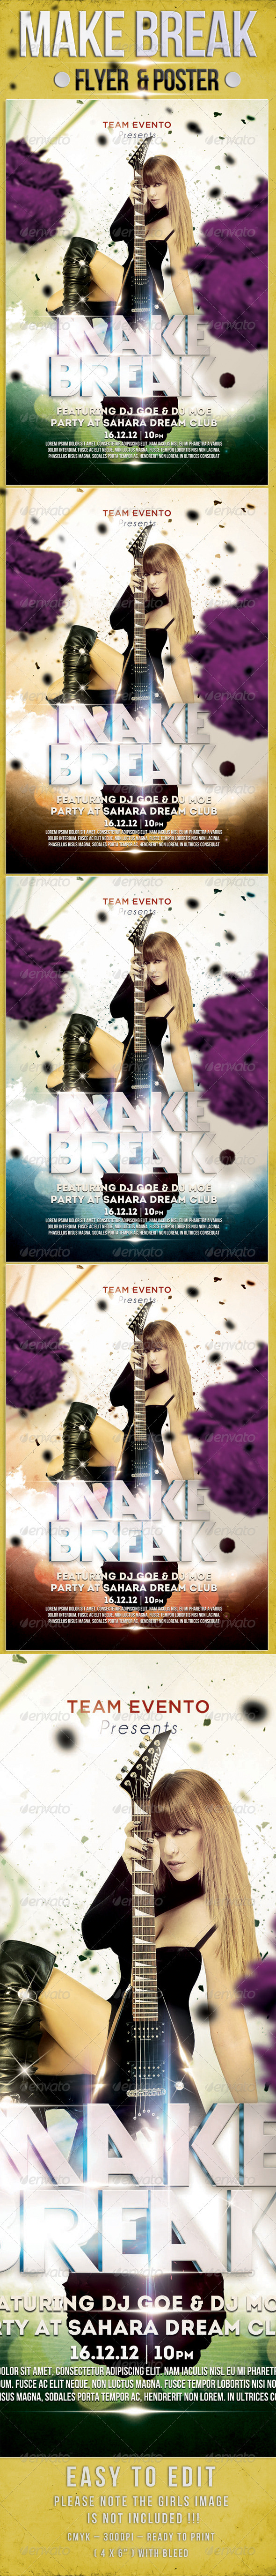 Make Break Party Flyer Template - Clubs & Parties Events